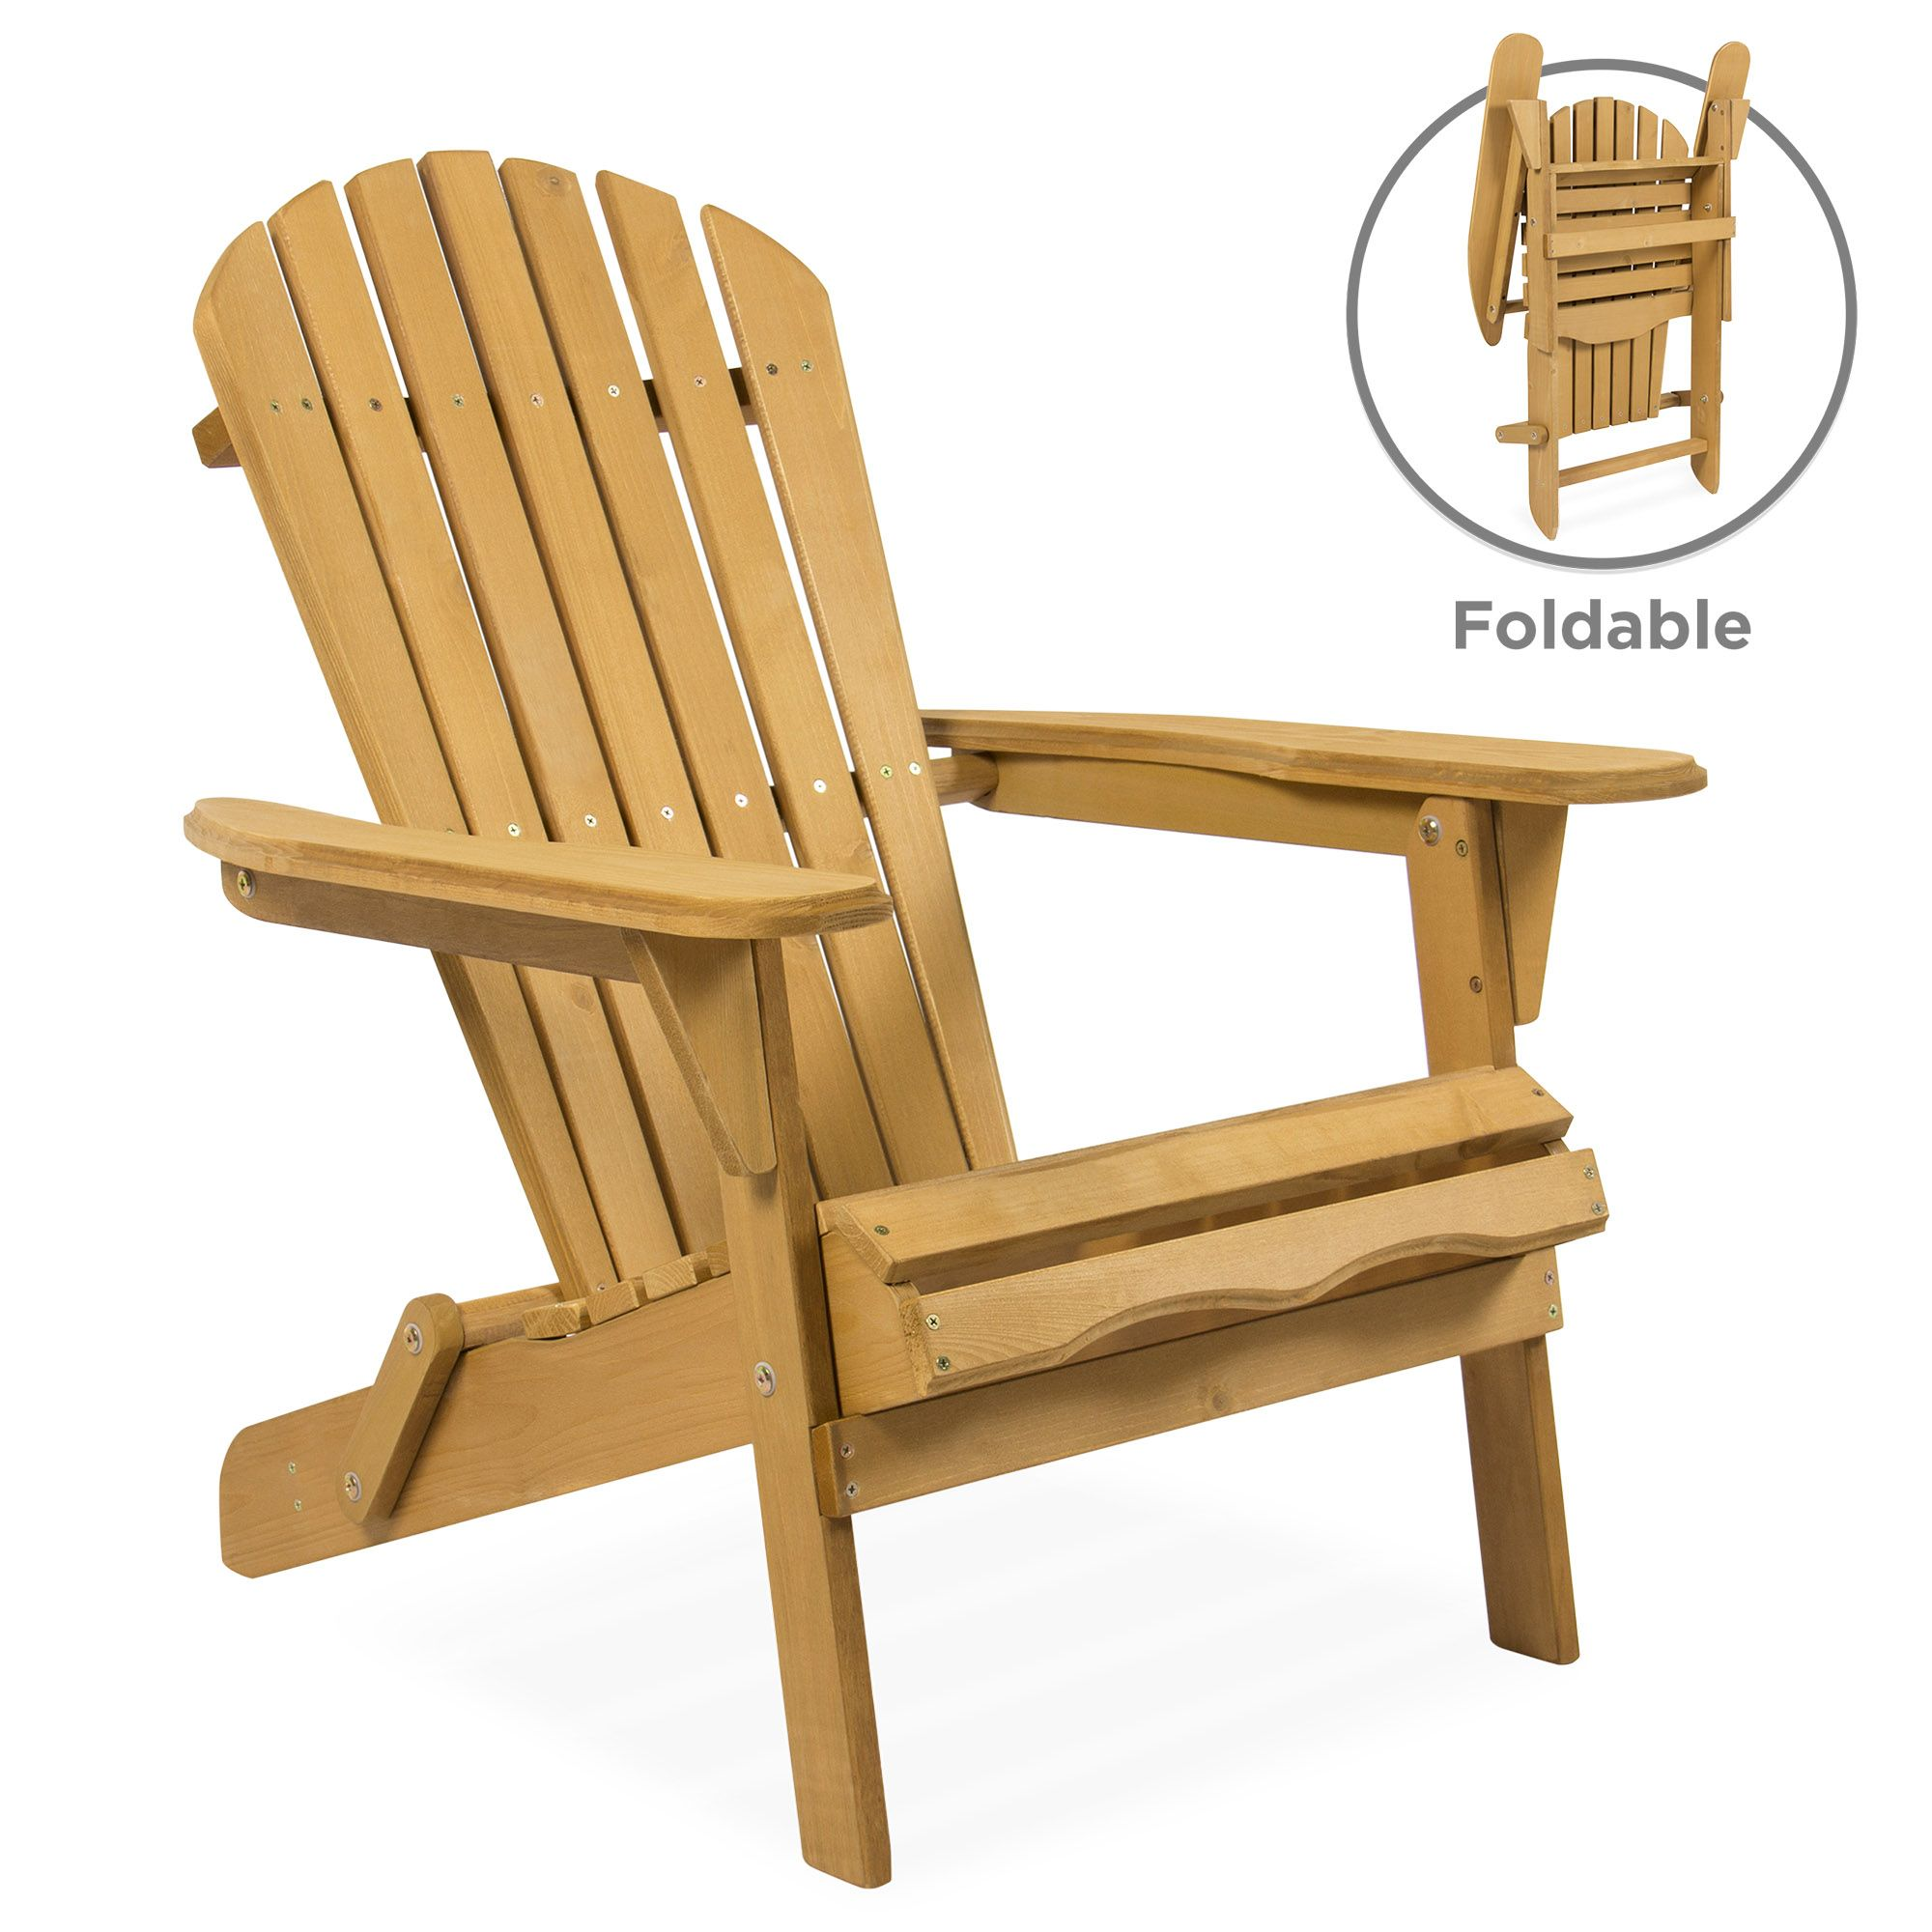 Patio & Garden in 2020 Wood adirondack chairs, Wooden